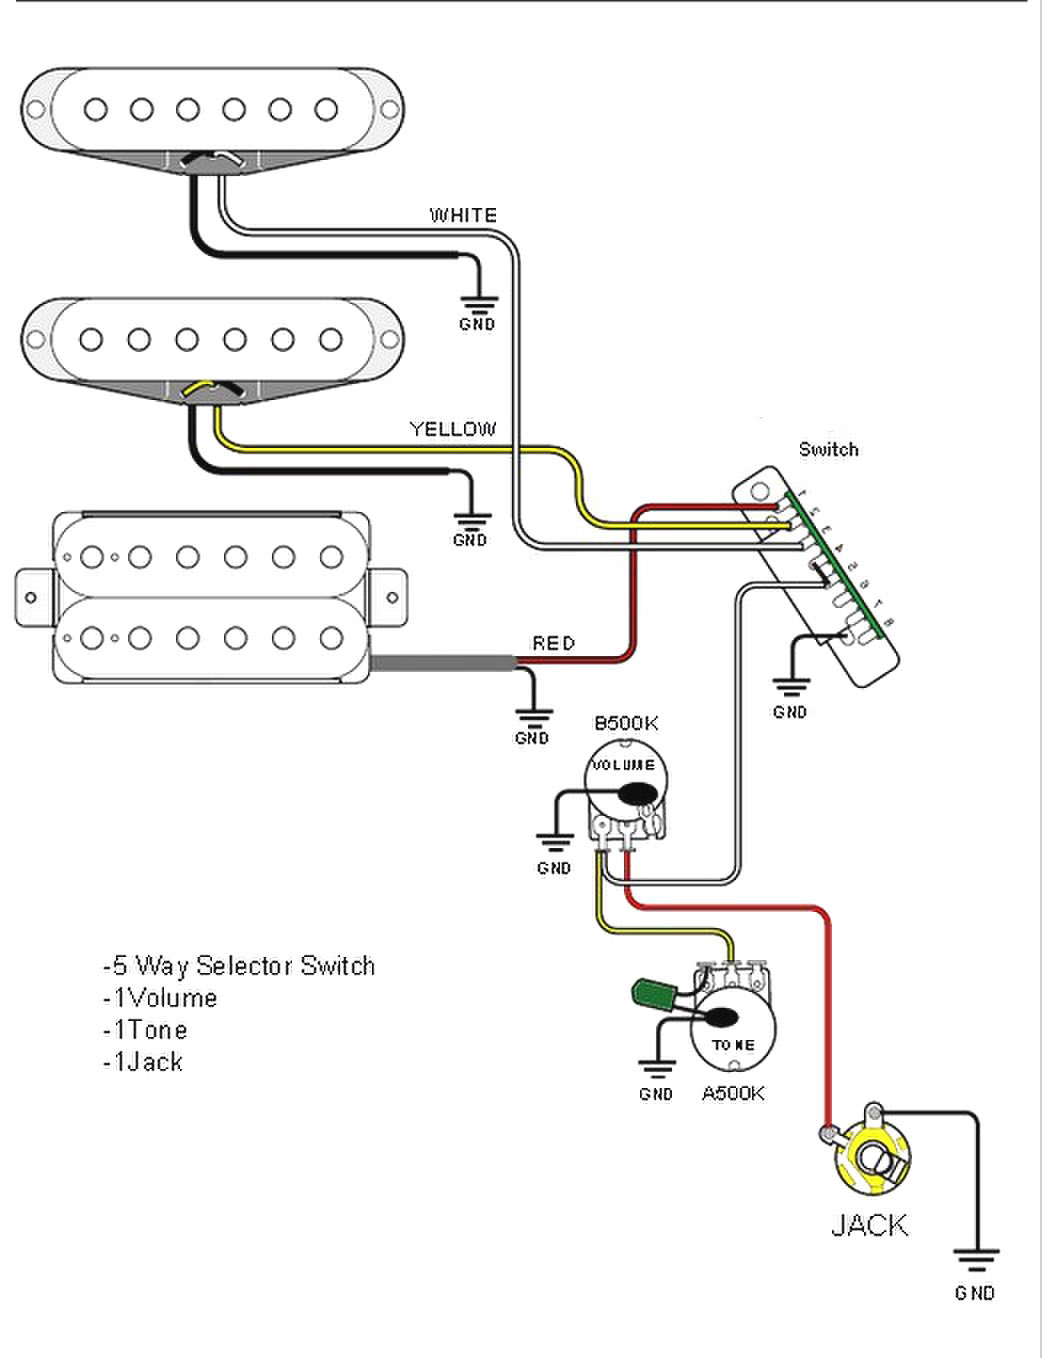 stratocaster wiring diagram 5 way switch Collection-Jeff Baxter Strat Wiring Diagram In Strat Wiring 1-j